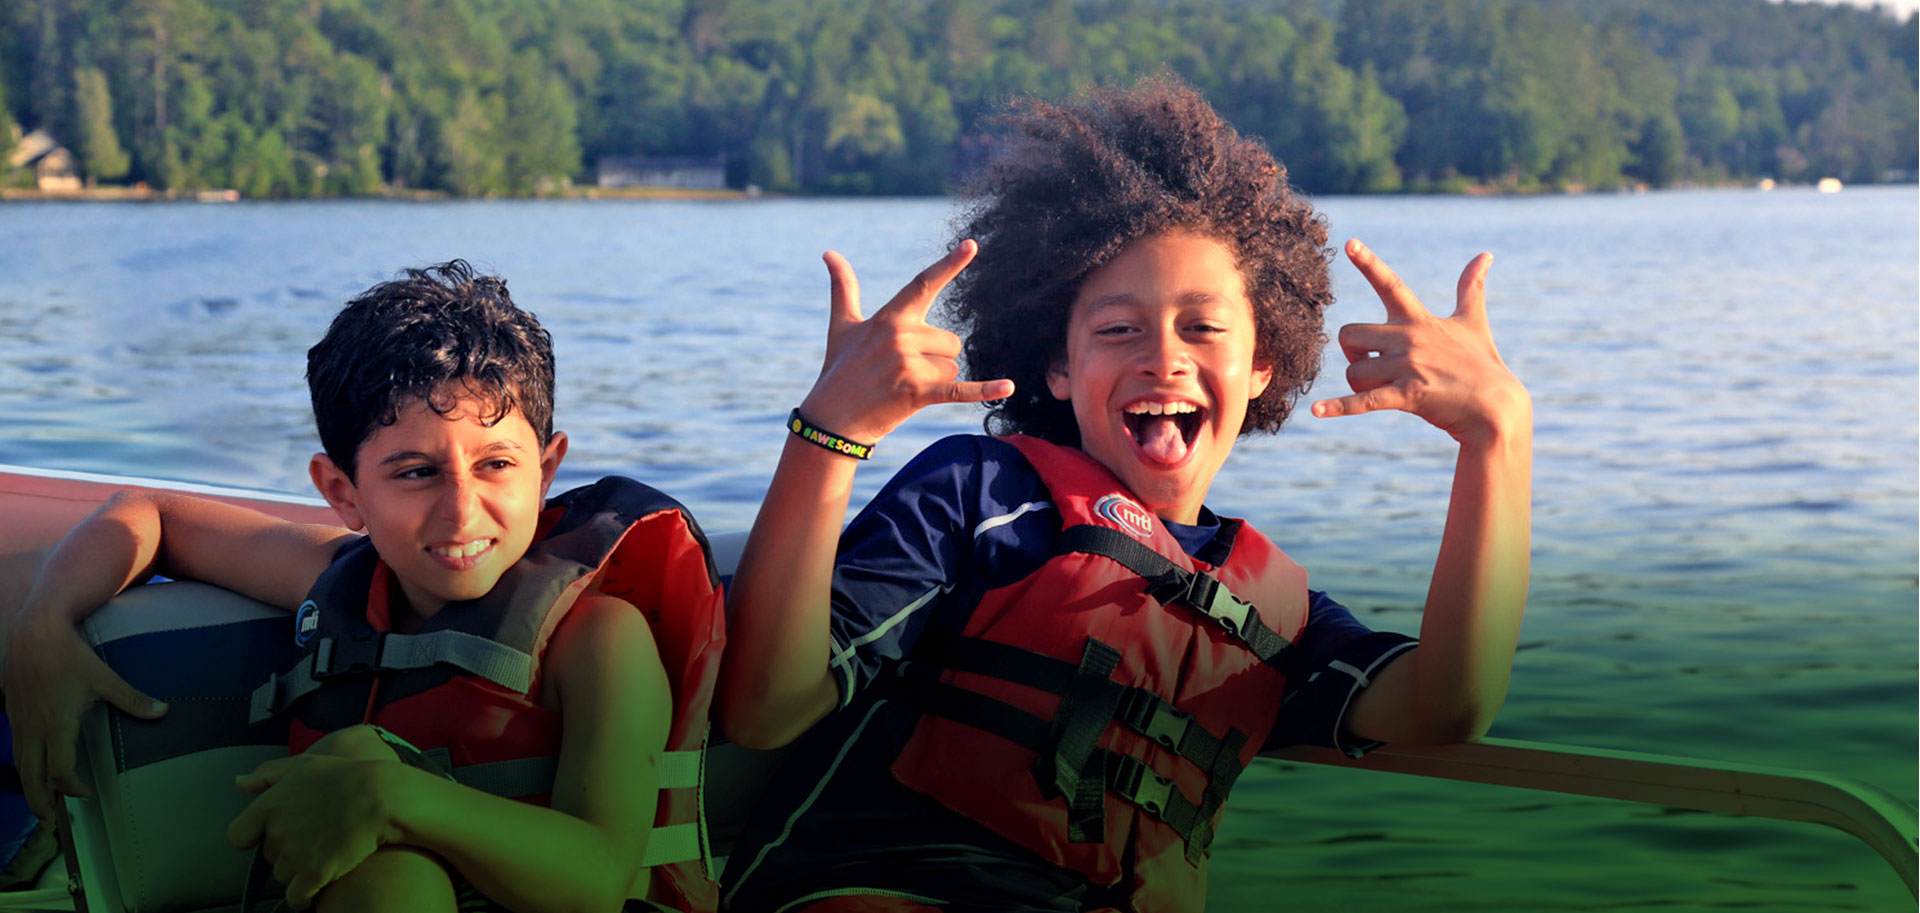 Brant Lake Camp Families and Campers